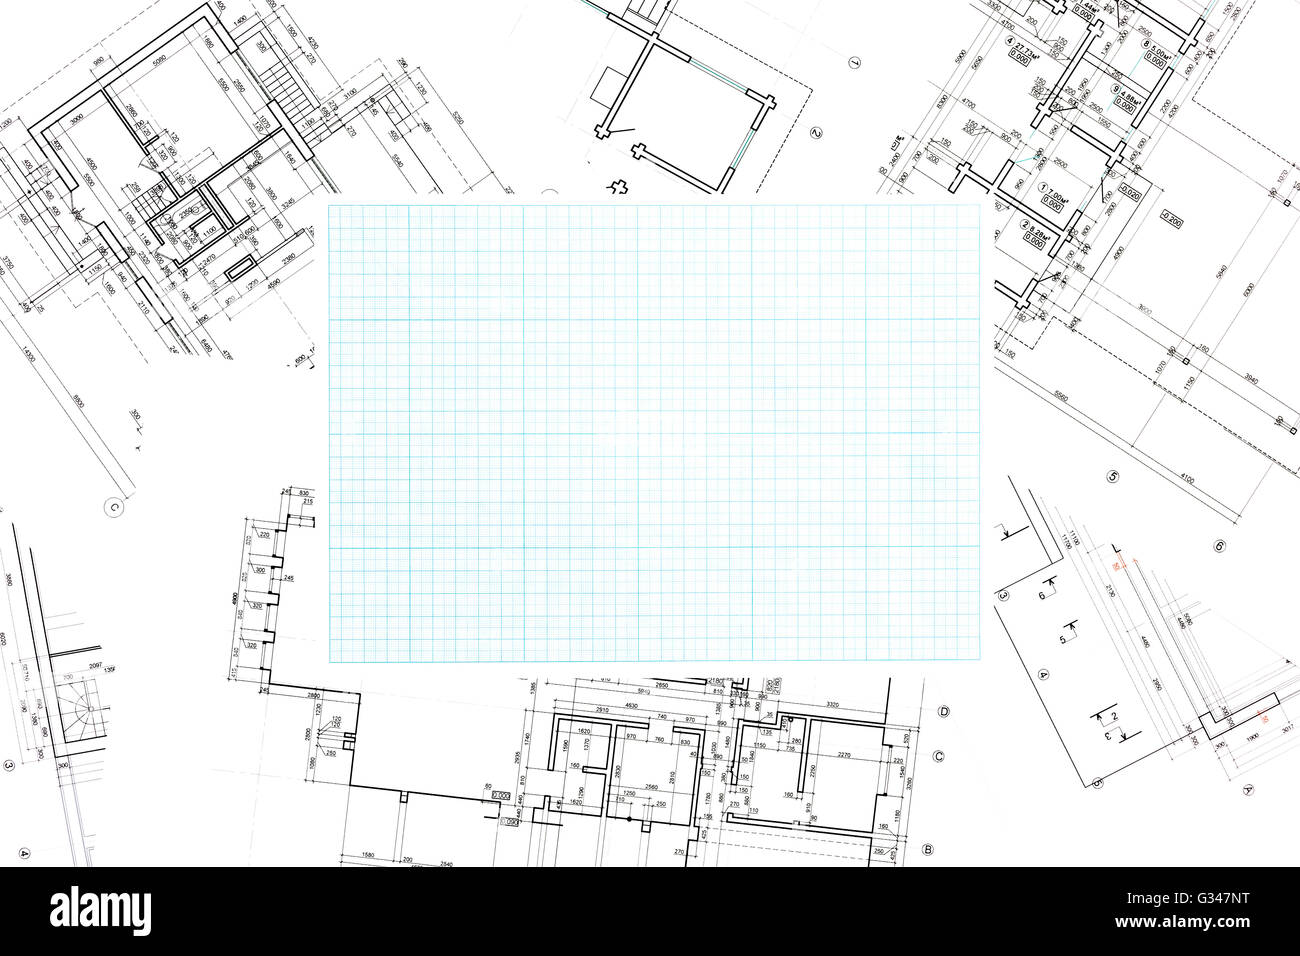 drafting blueprint grid architecture stock photos  u0026 drafting blueprint grid architecture stock